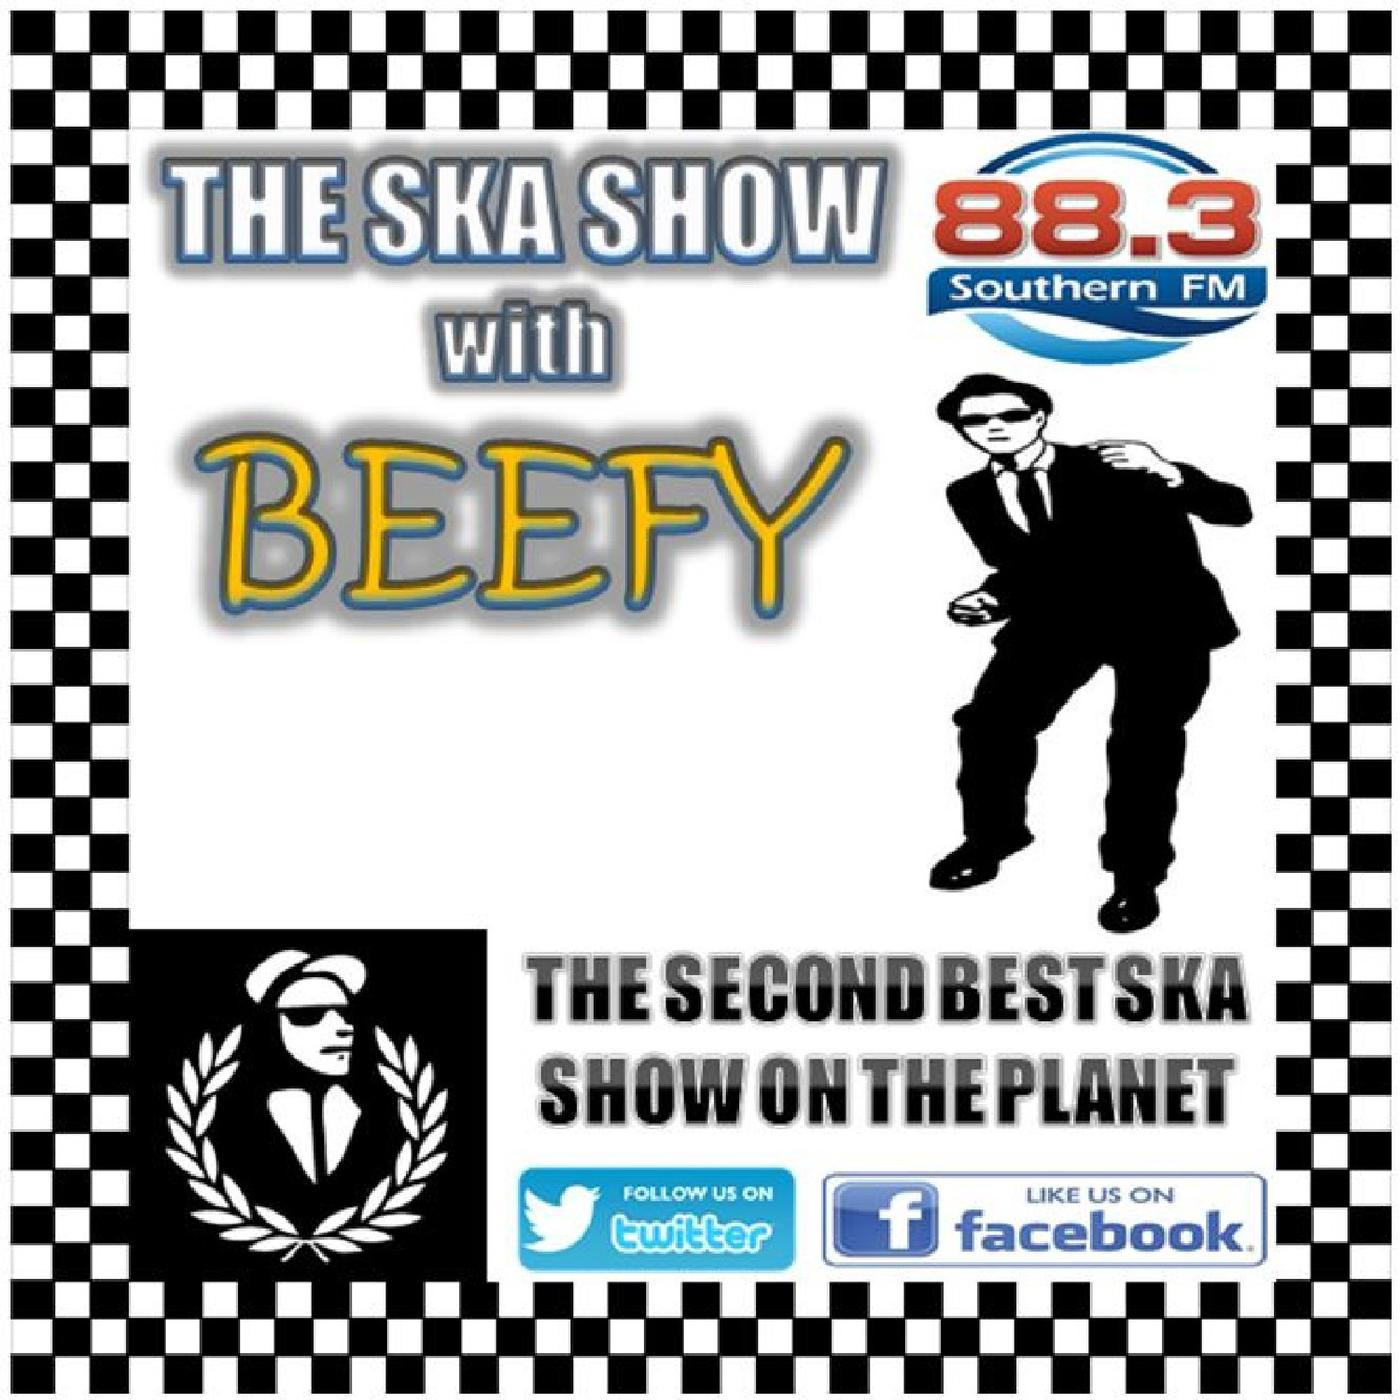 The Ska Show with Beefy, November 29th 2018